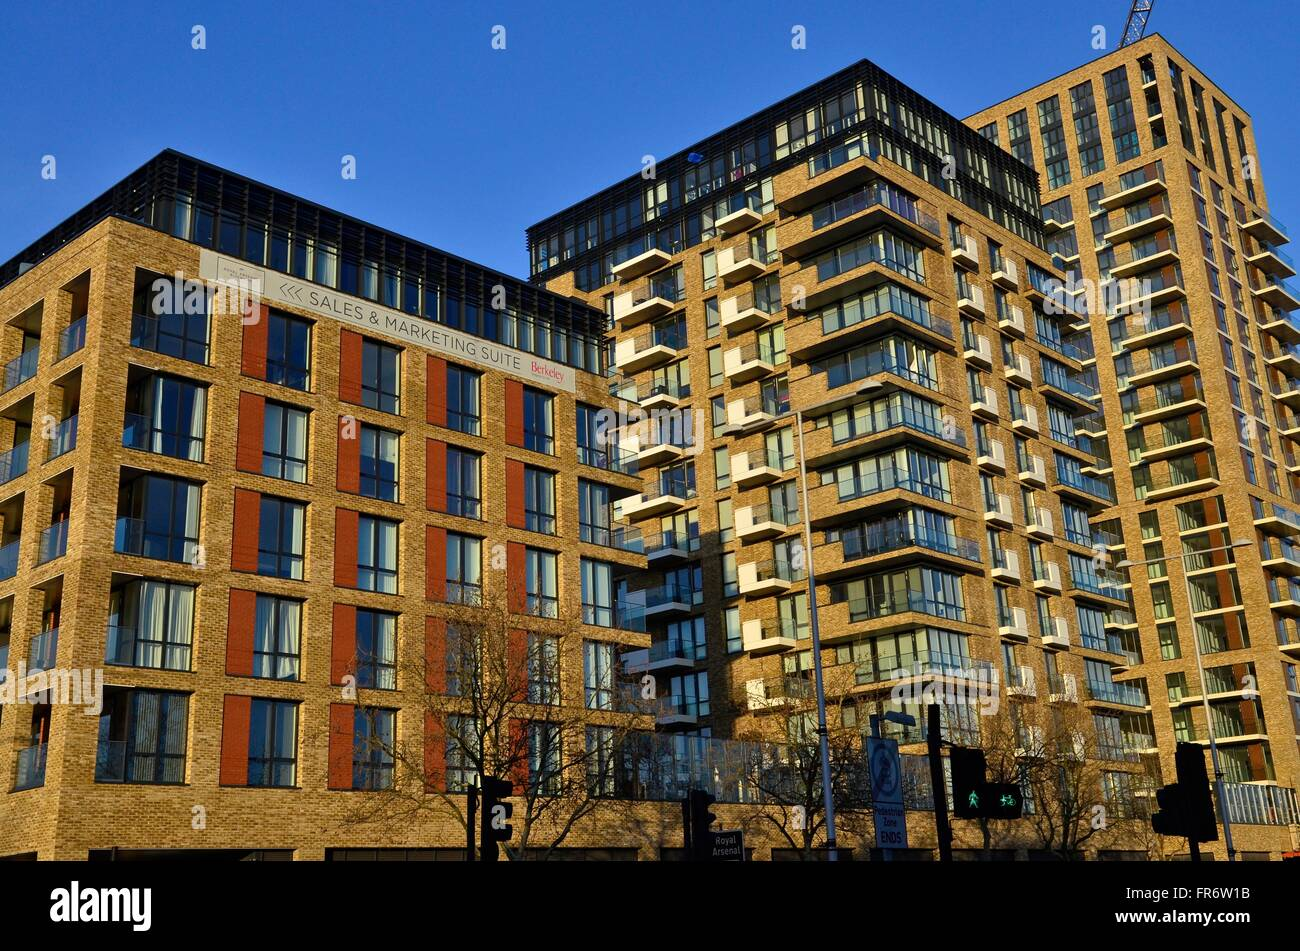 The new Berkeley Homes apartment development in Royal Arsenal, Woolwich, London, England, UK - Stock Image